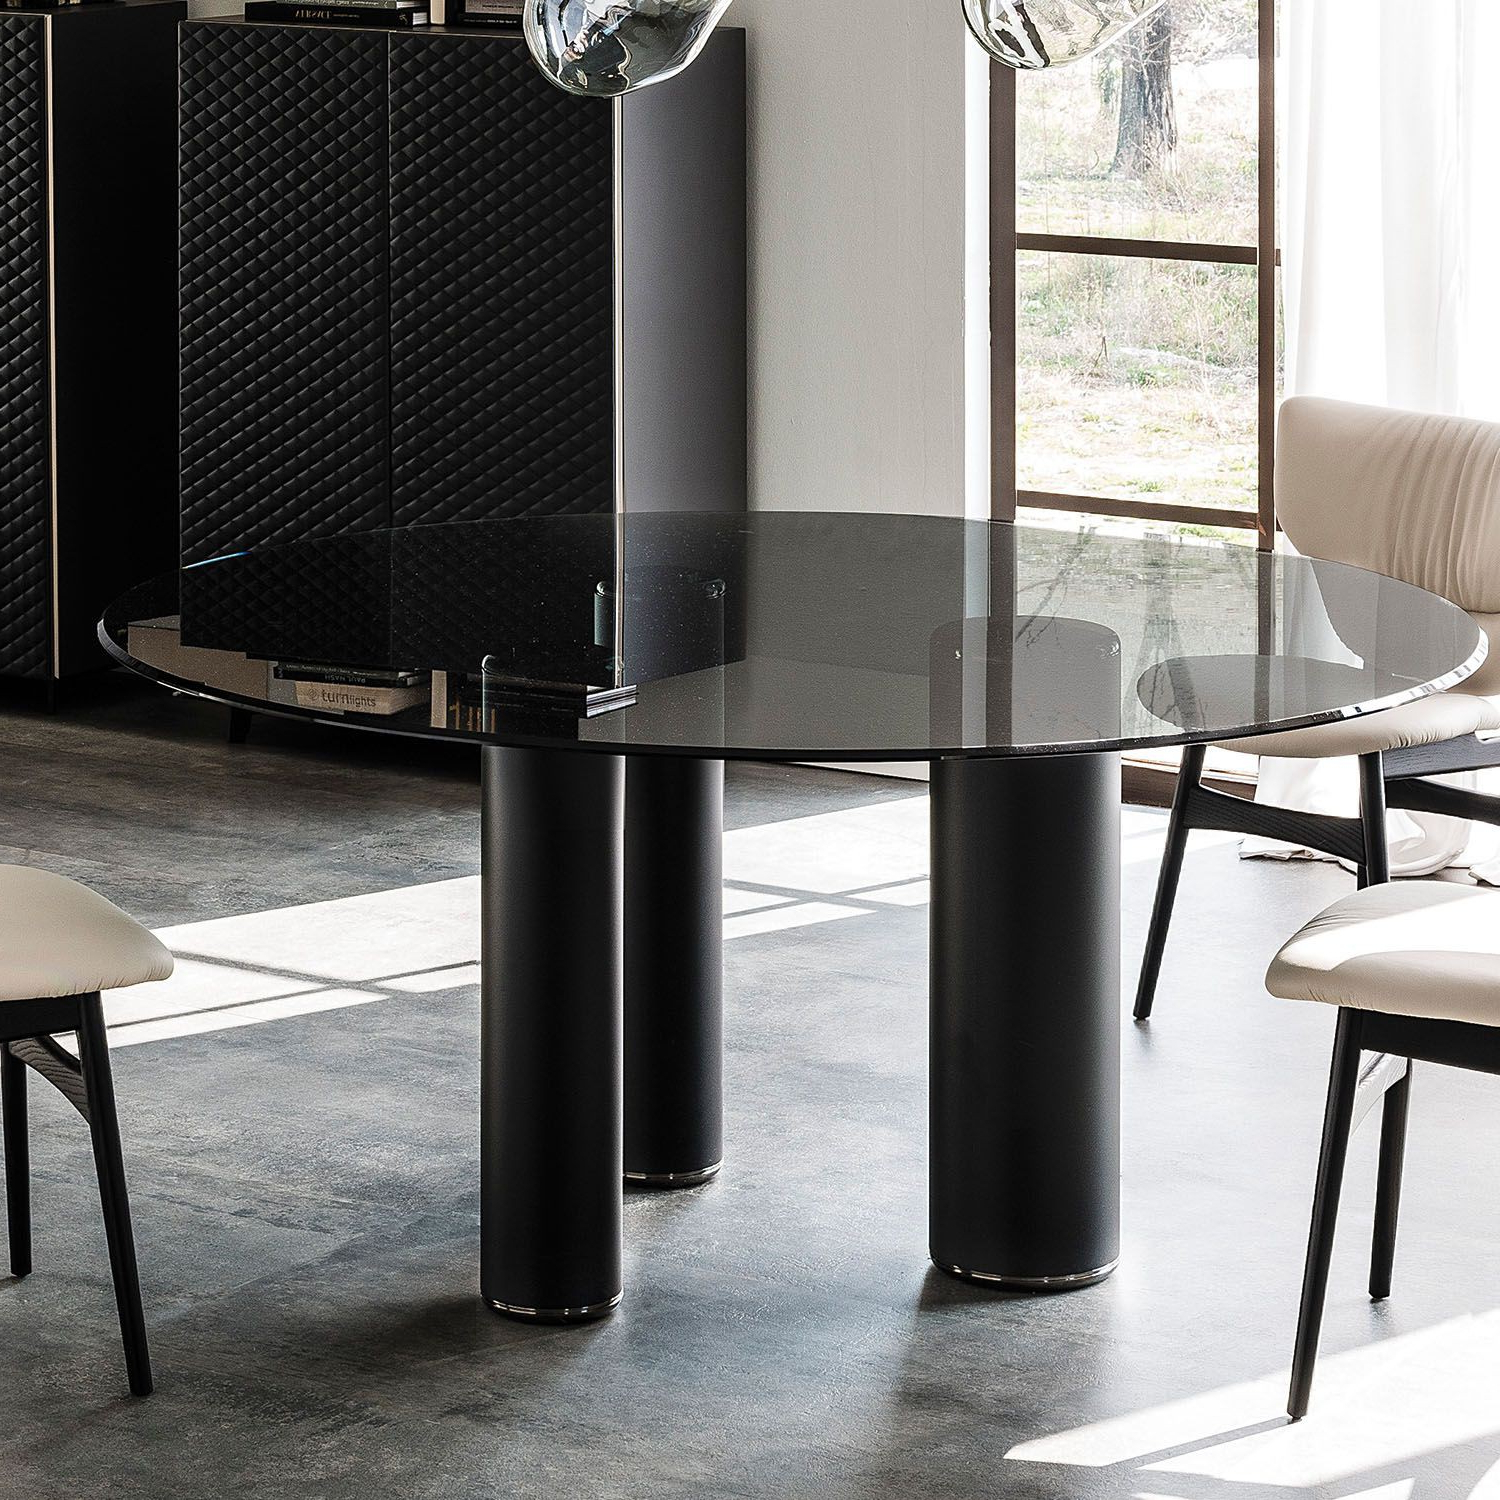 Roll Round Dining Table, Cattelan Italia – Neo Furniture Within Well Known Neo Round Dining Tables (View 17 of 30)